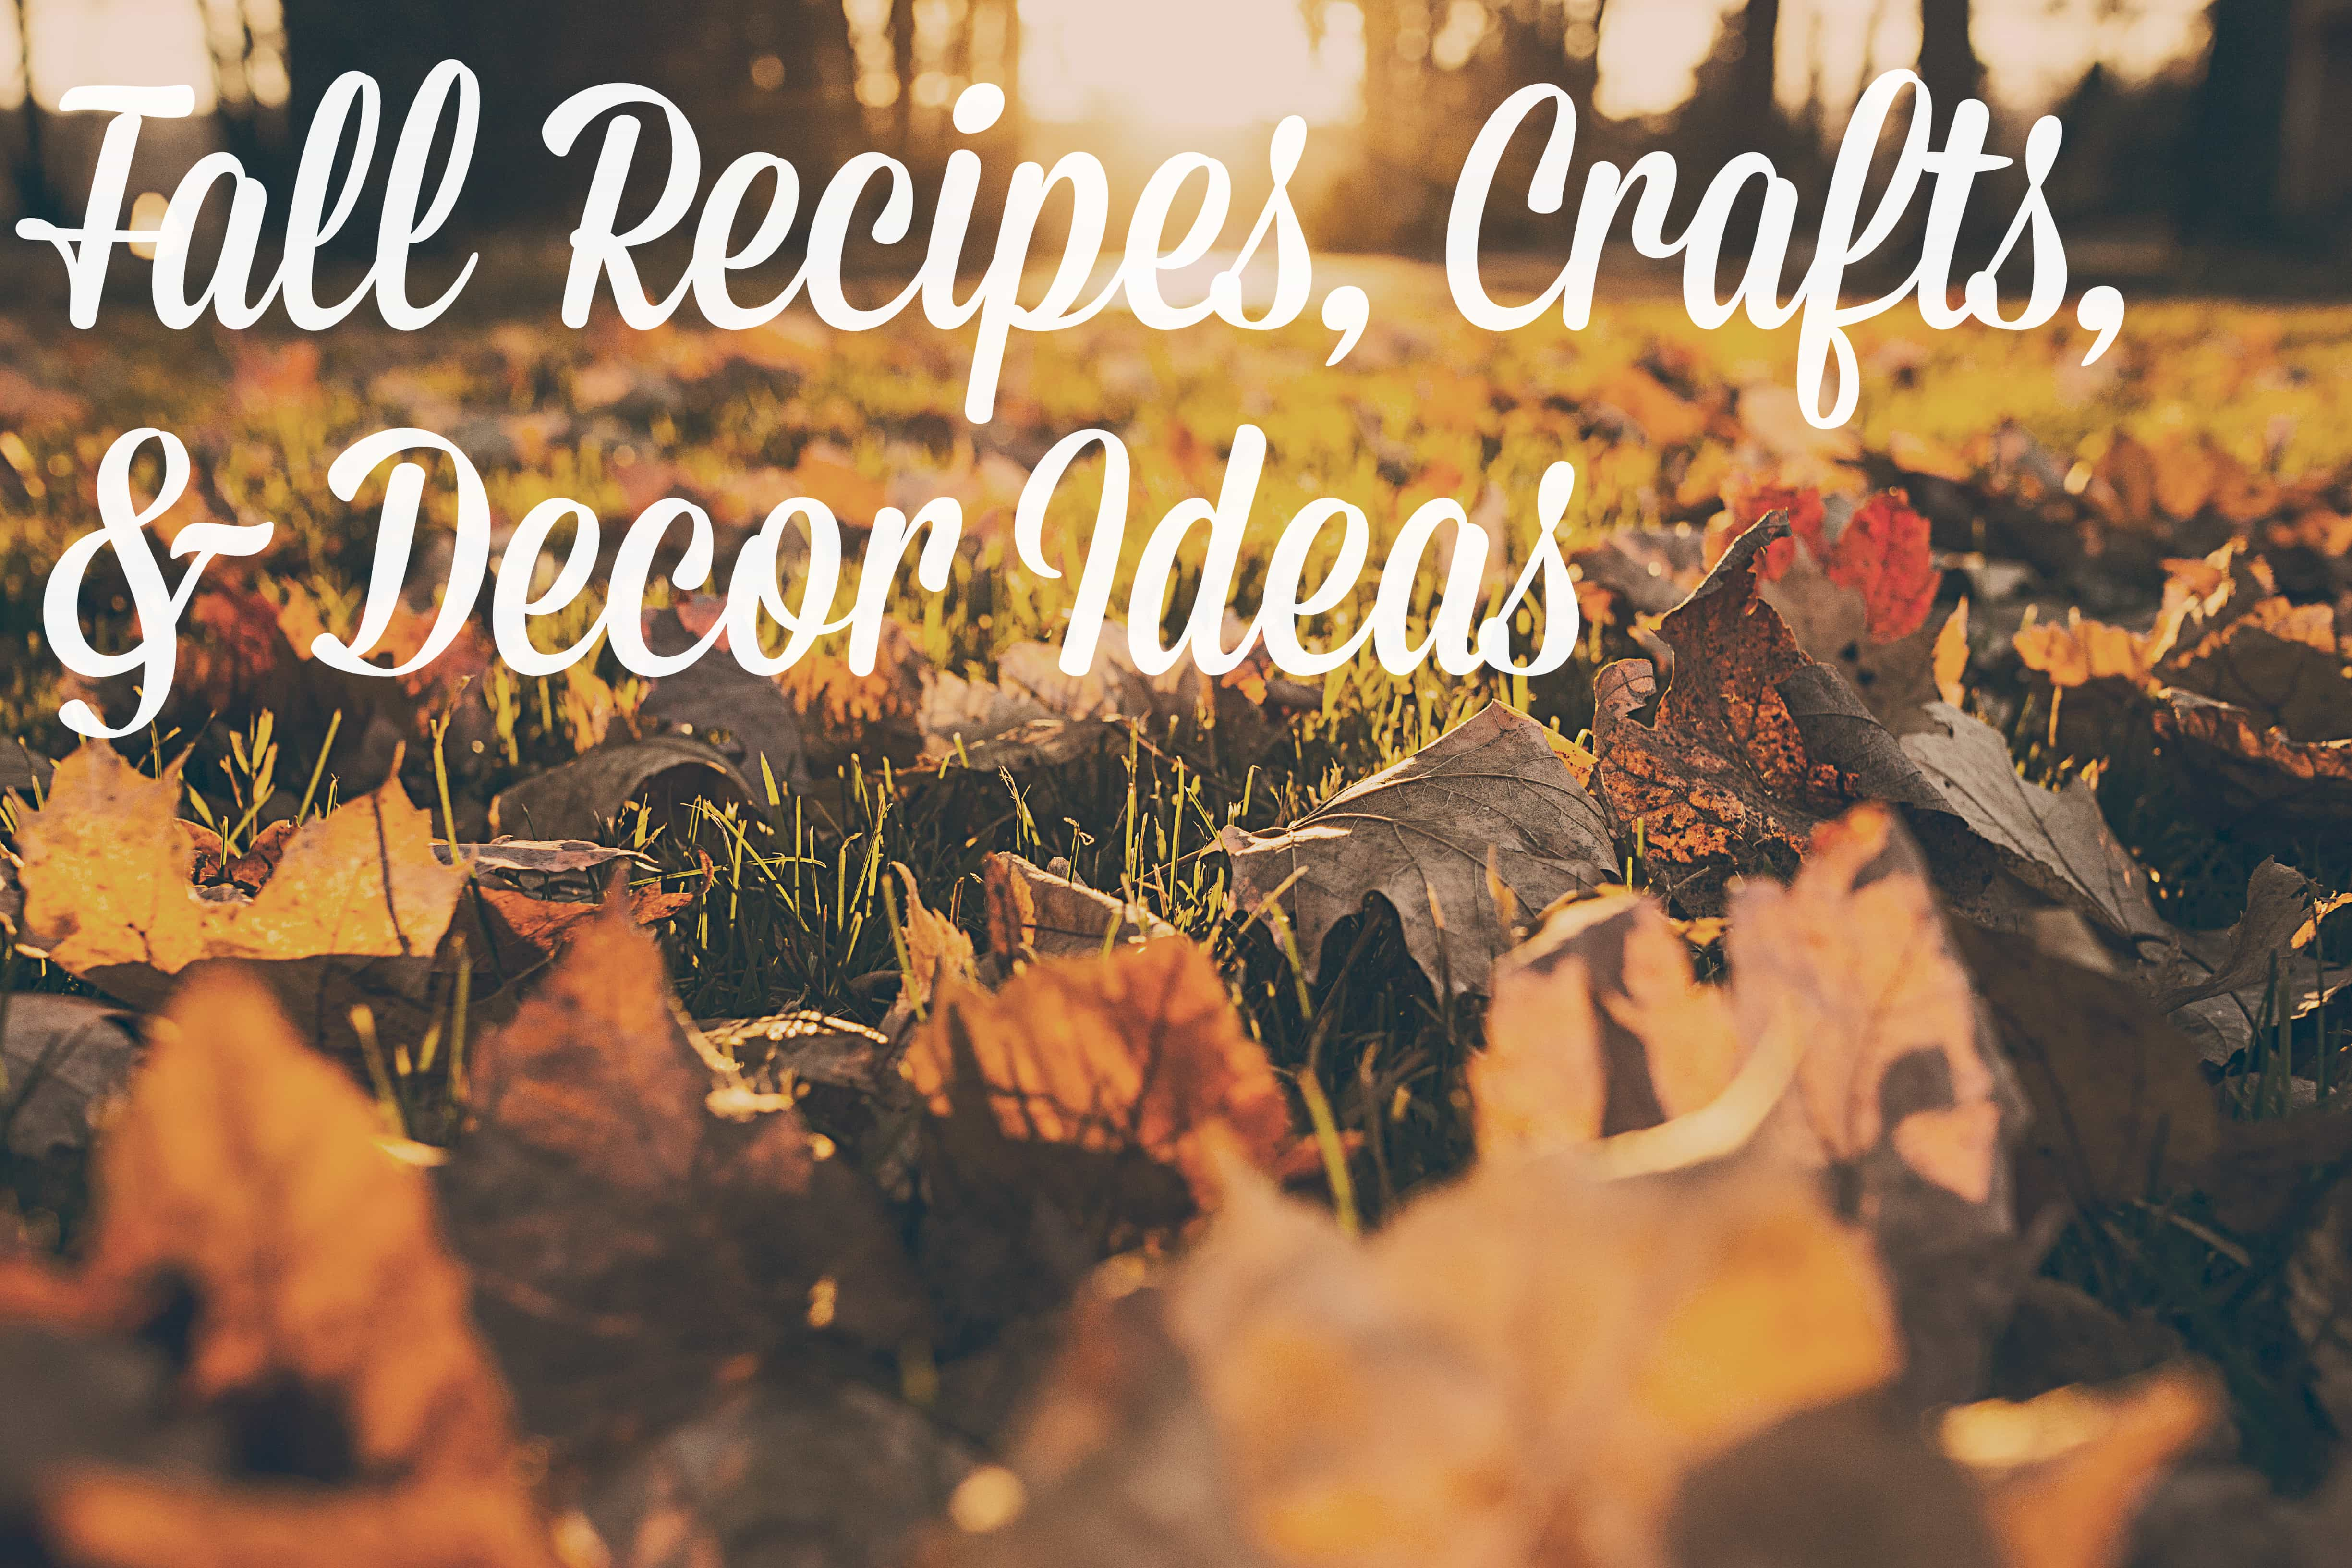 fall recipes crafts decor